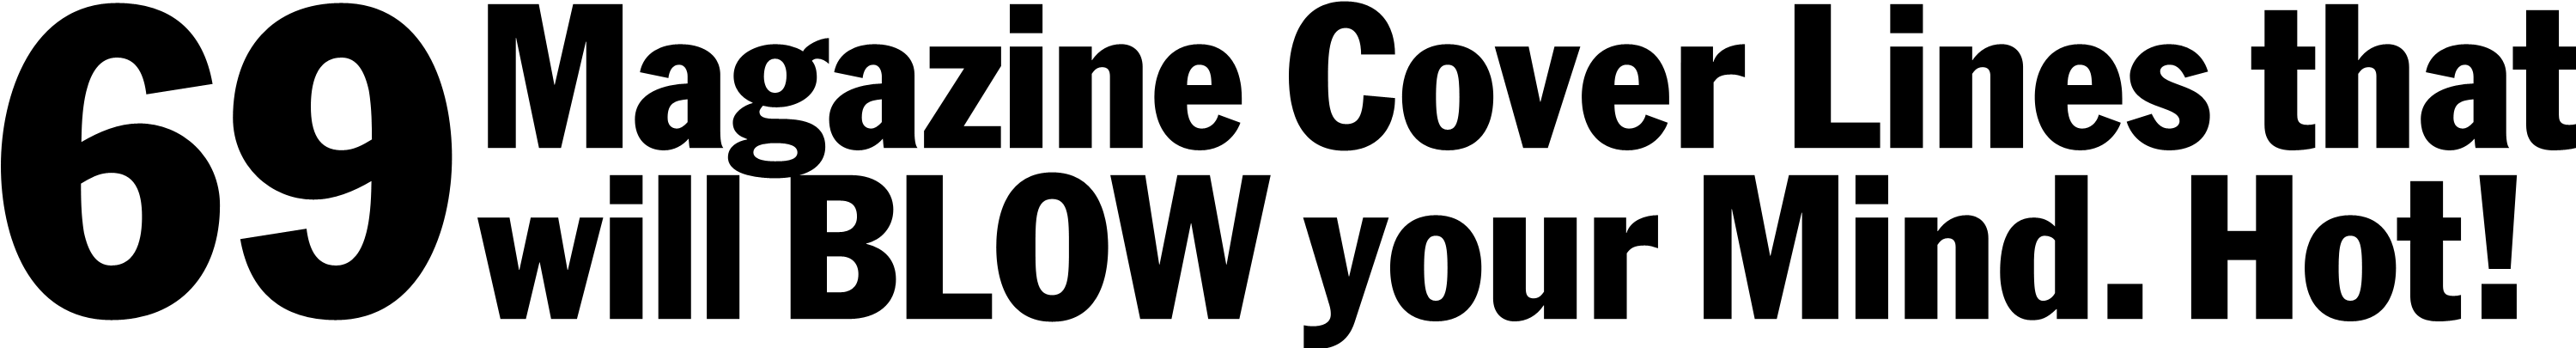 69 Magazine Cover Lines that will BLOW your Mind. Hot!